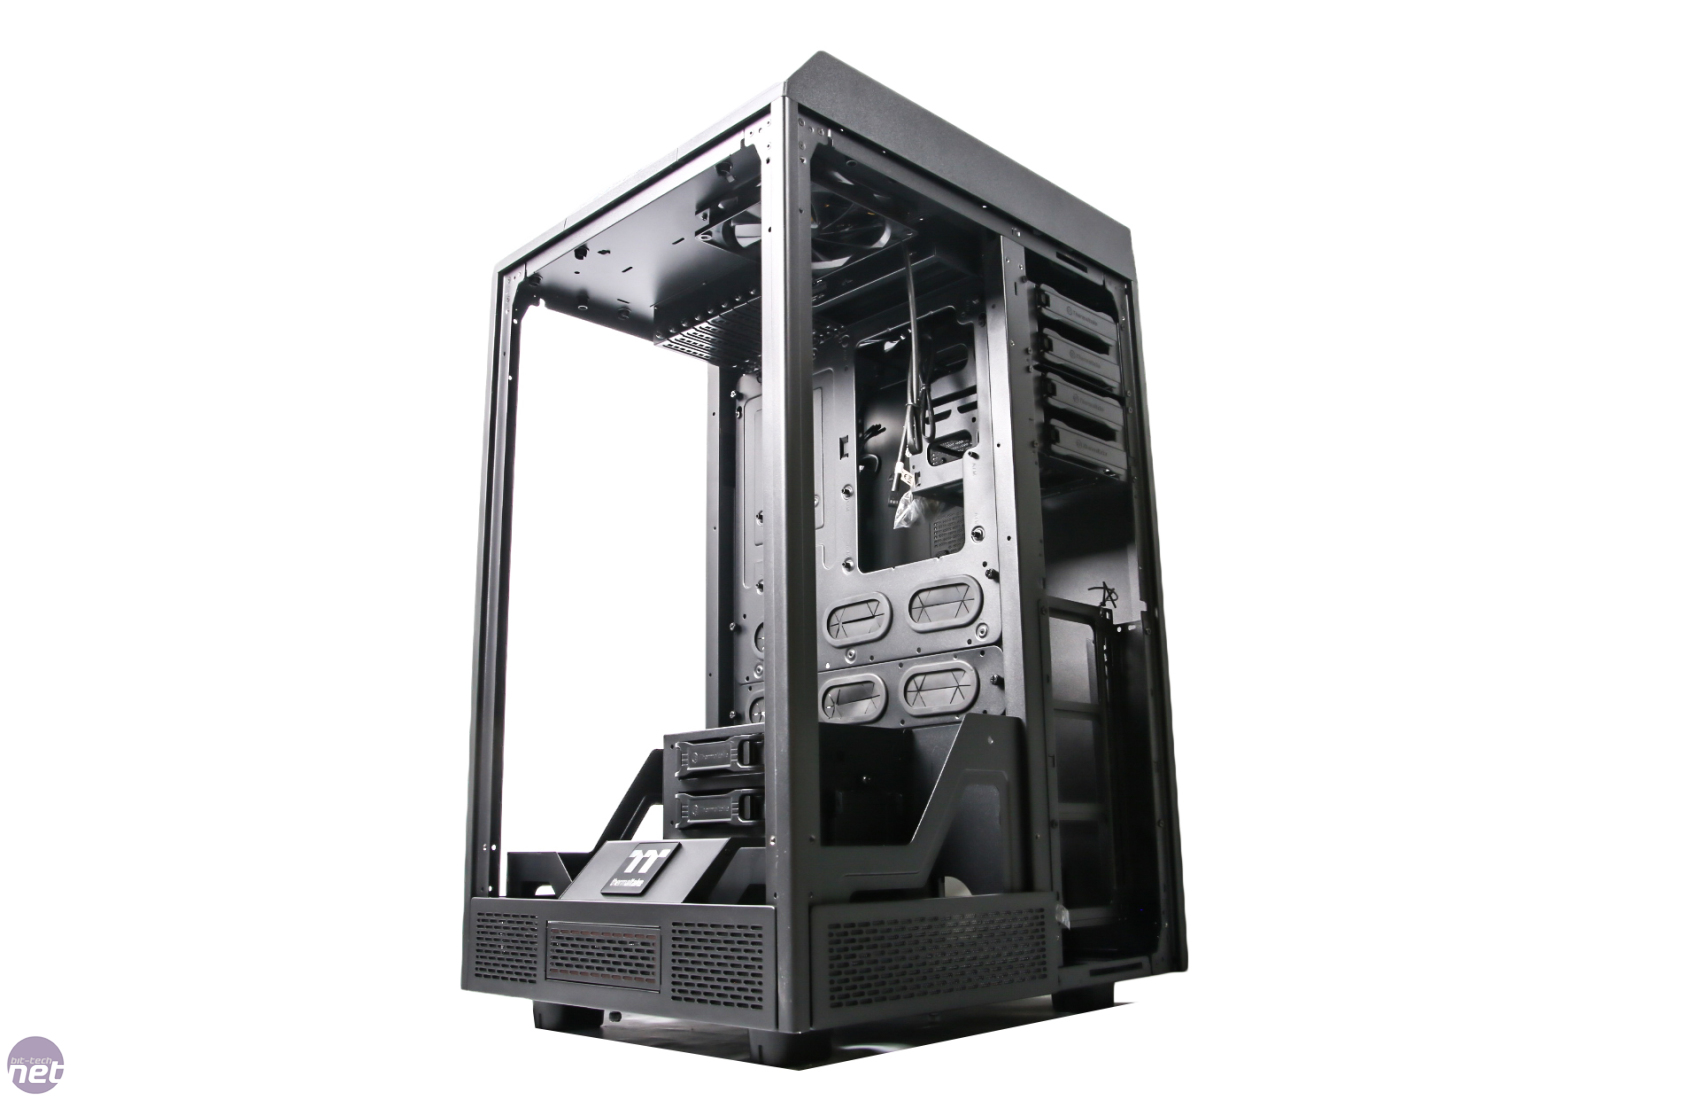 #675E6D Thermaltake Tower 900 Review Bit Tech.net Recommended 7167 Water Cooled Tower pics with 1700x1100 px on helpvideos.info - Air Conditioners, Air Coolers and more